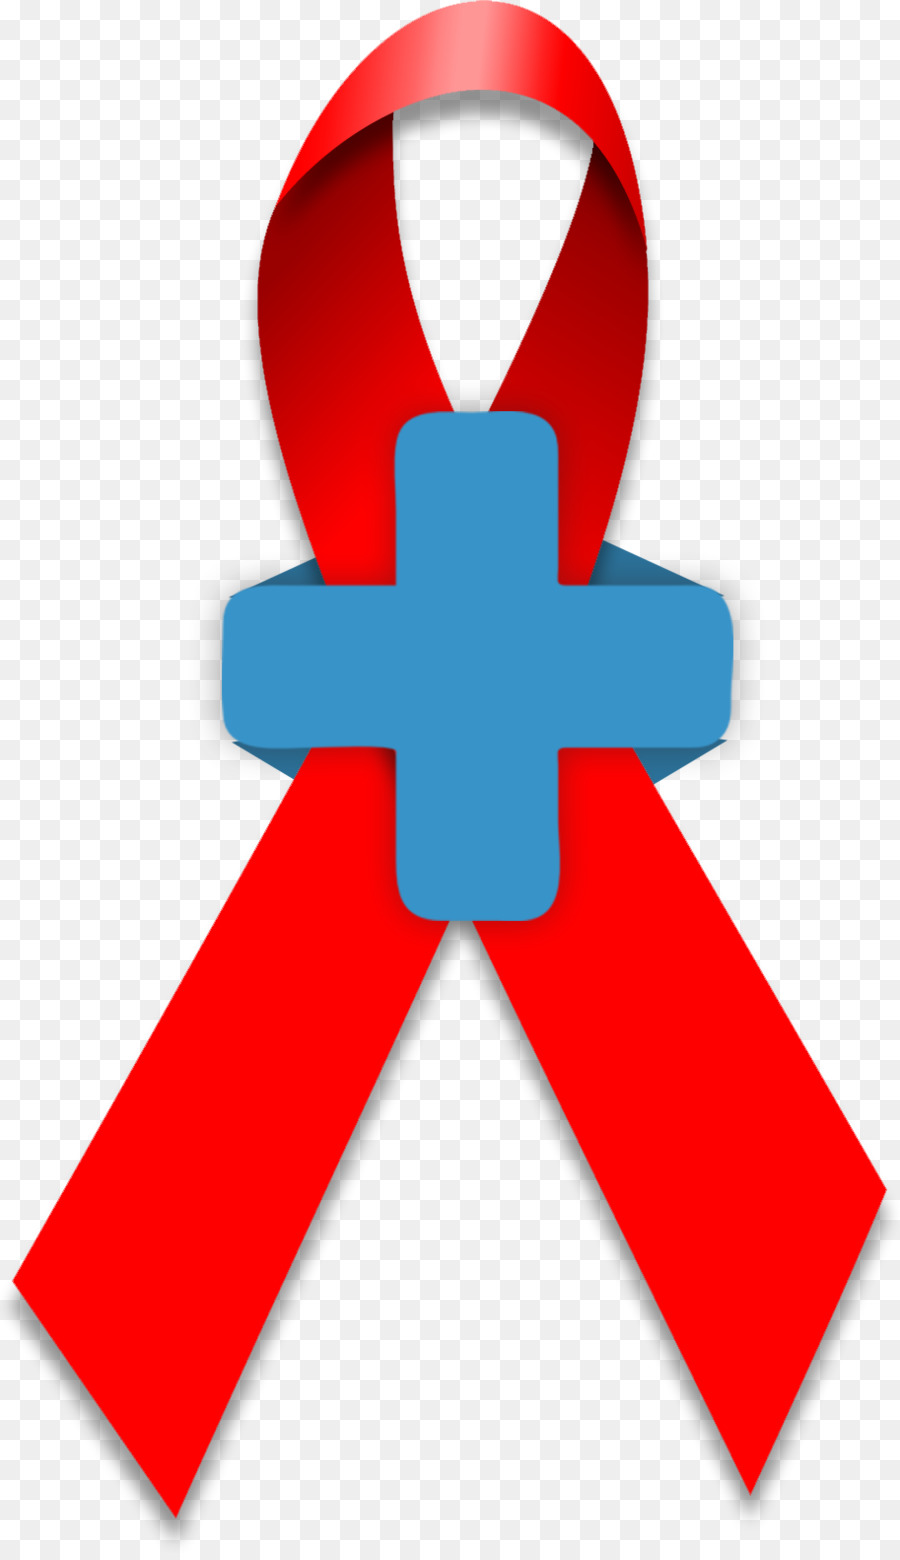 Epidemiology Of Hivaids Red Ribbon World Aids Day December 1